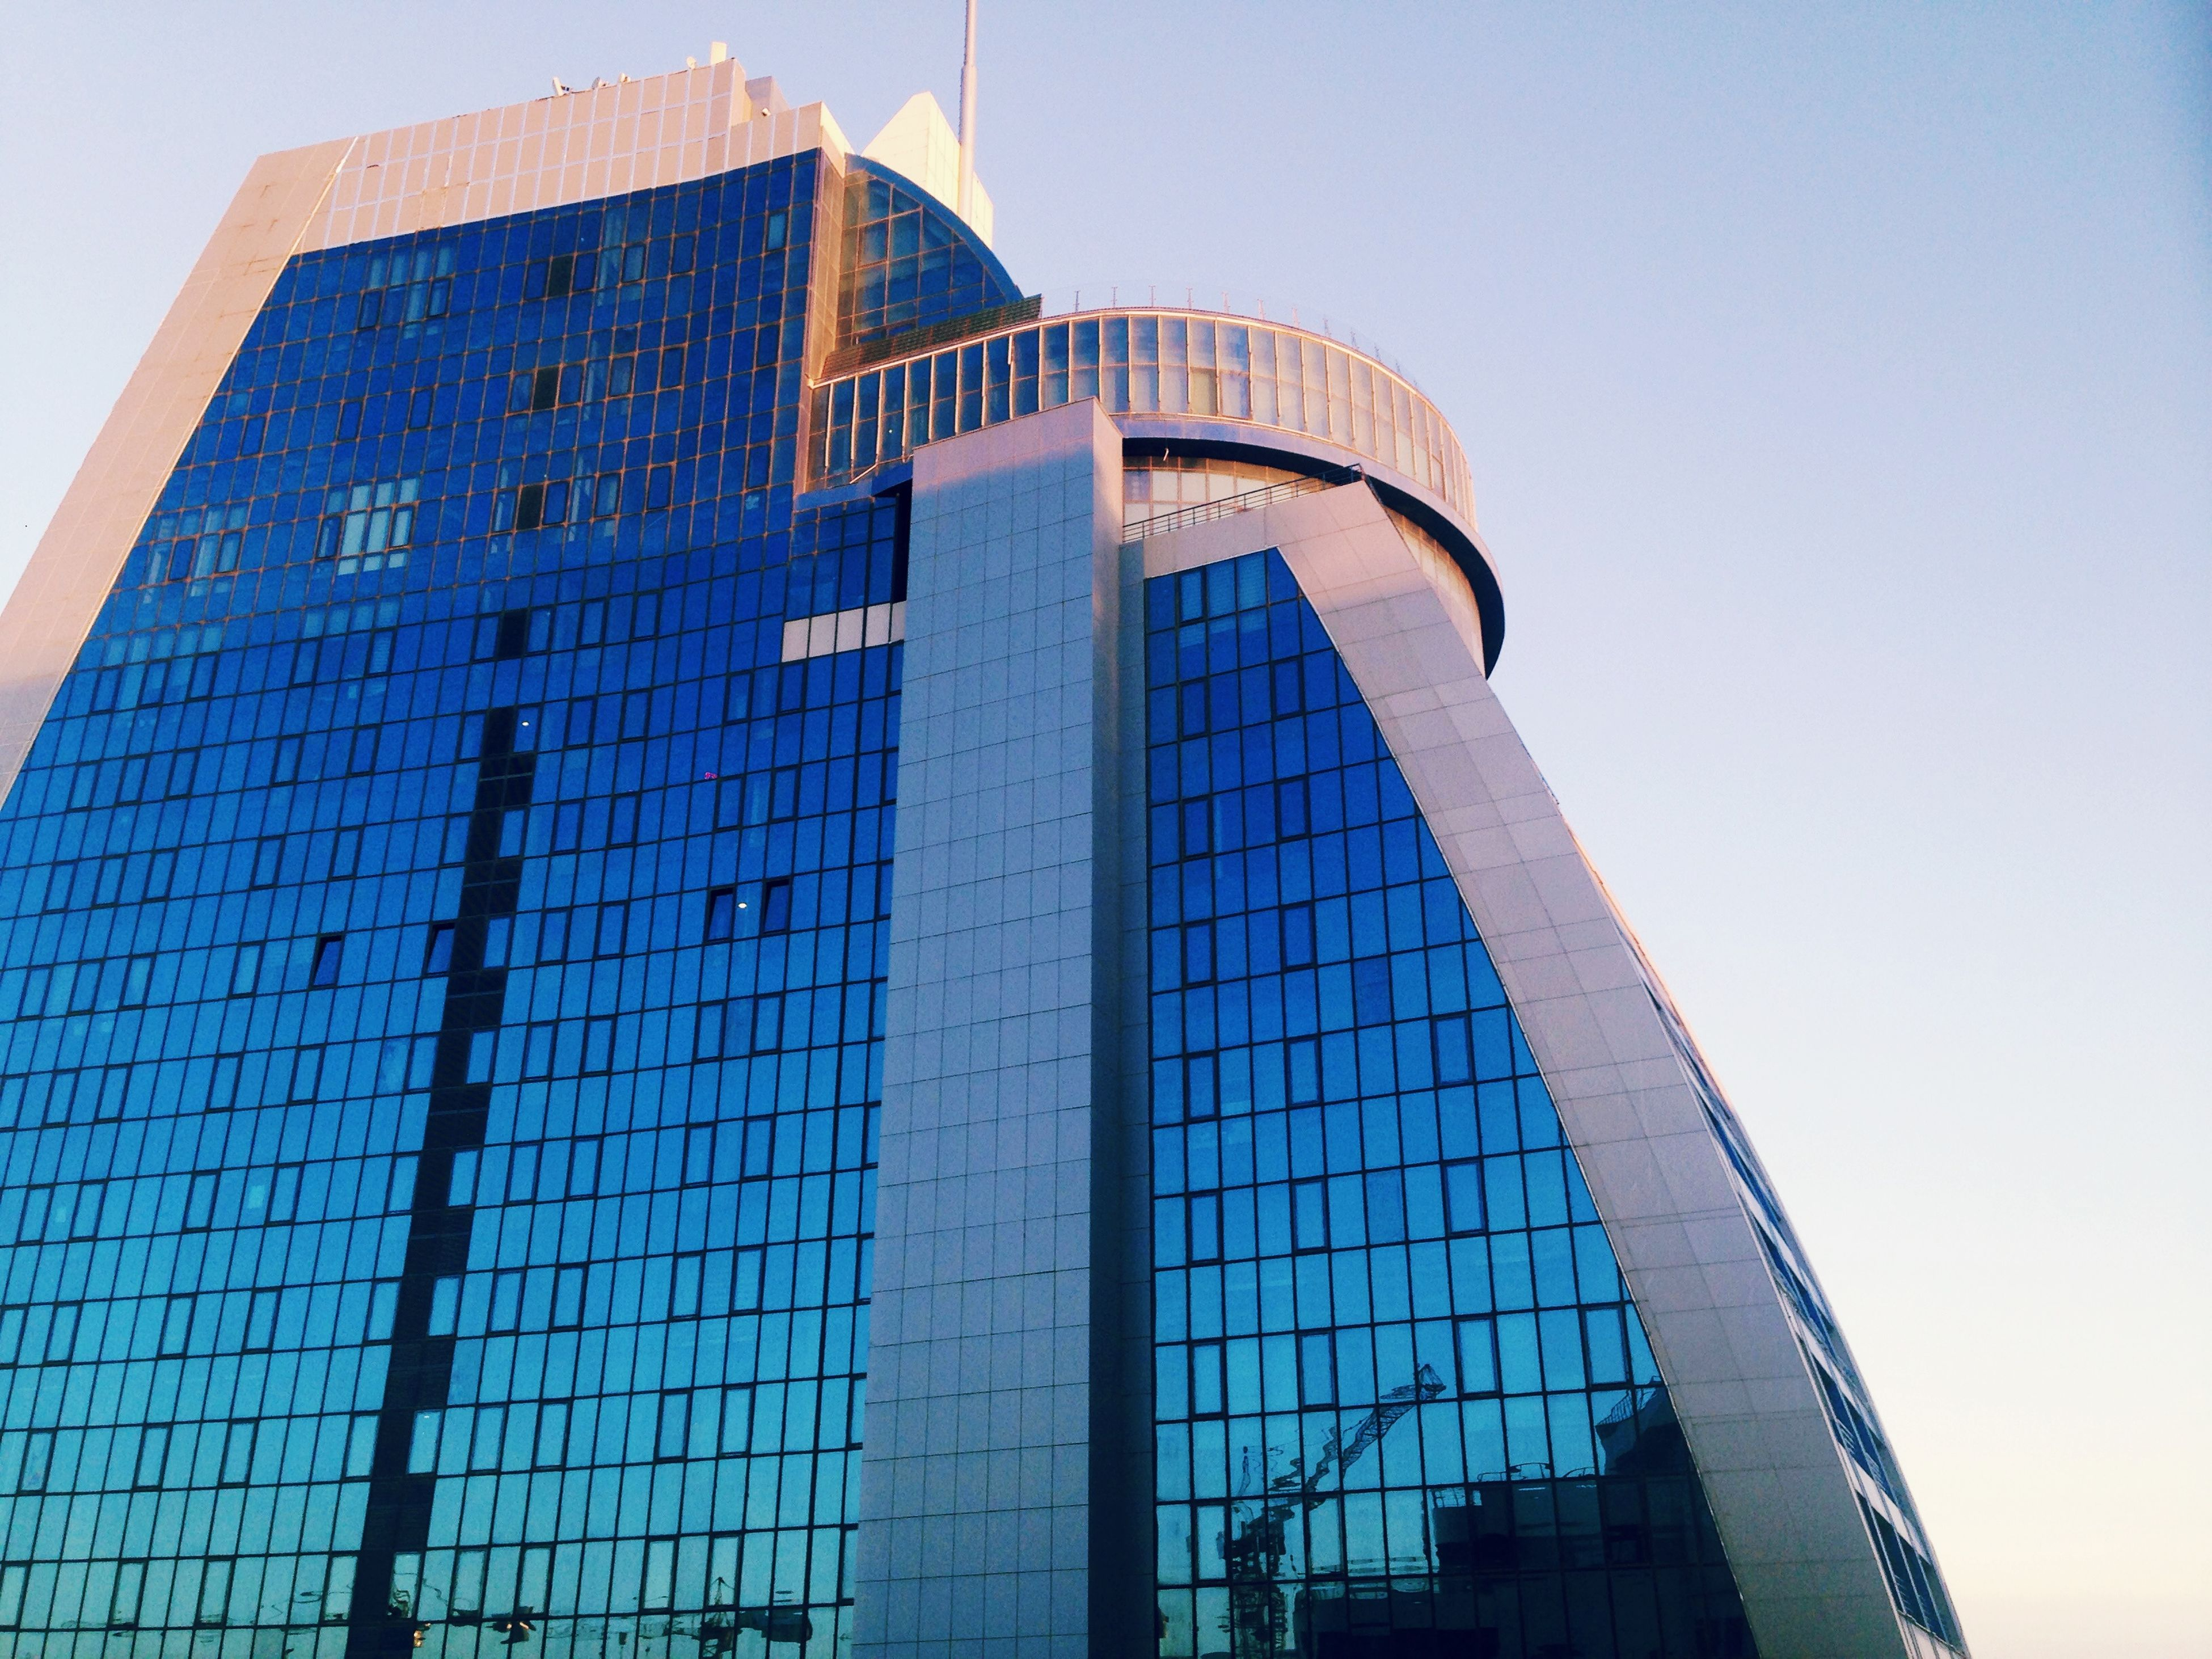 architecture, built structure, building exterior, low angle view, modern, clear sky, city, office building, tower, tall - high, skyscraper, building, sky, glass - material, day, reflection, outdoors, capital cities, no people, travel destinations